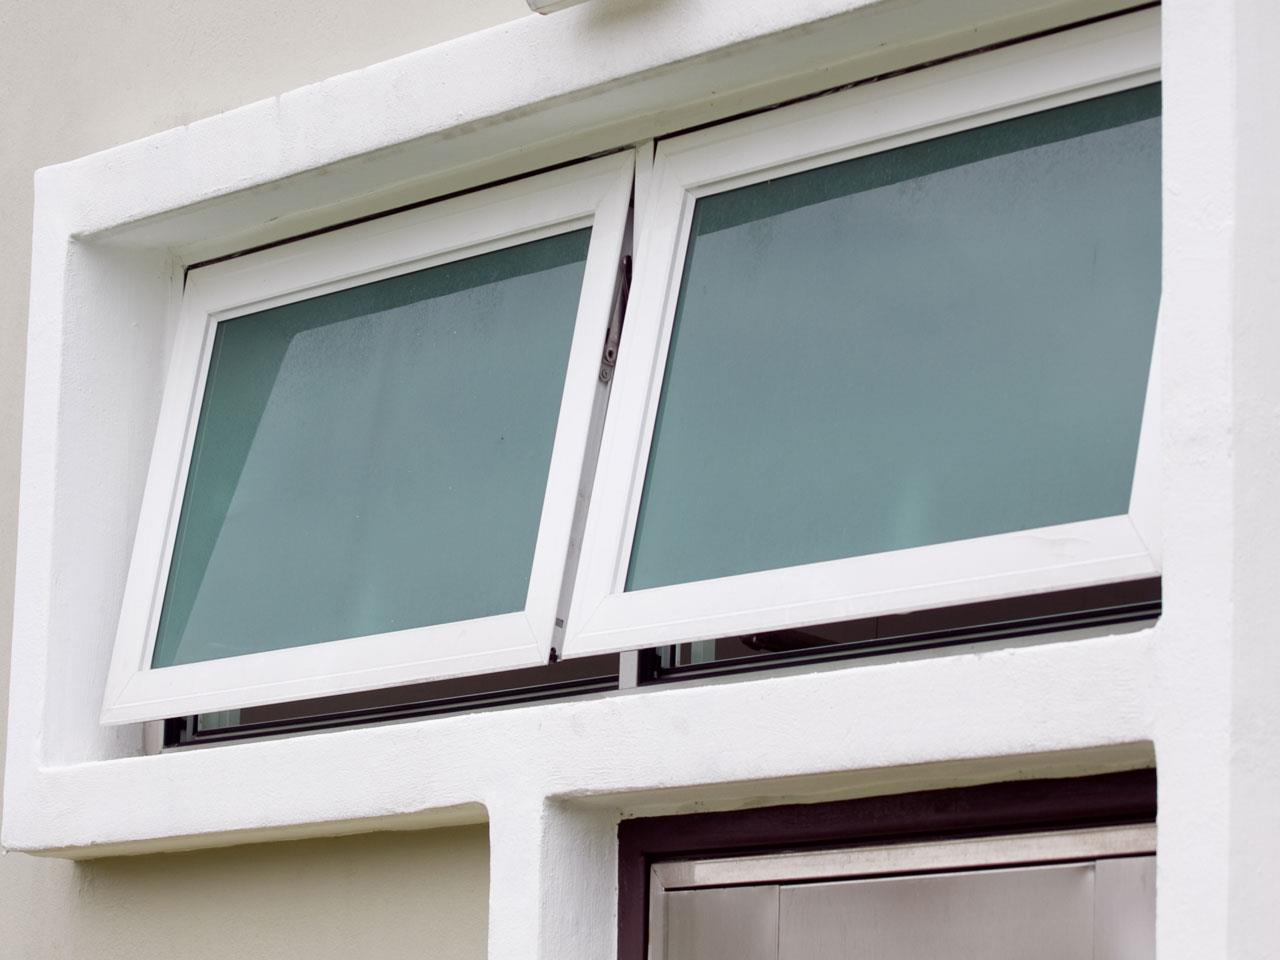 Sell aluminium casement window glass from indonesia by for Casement windows price